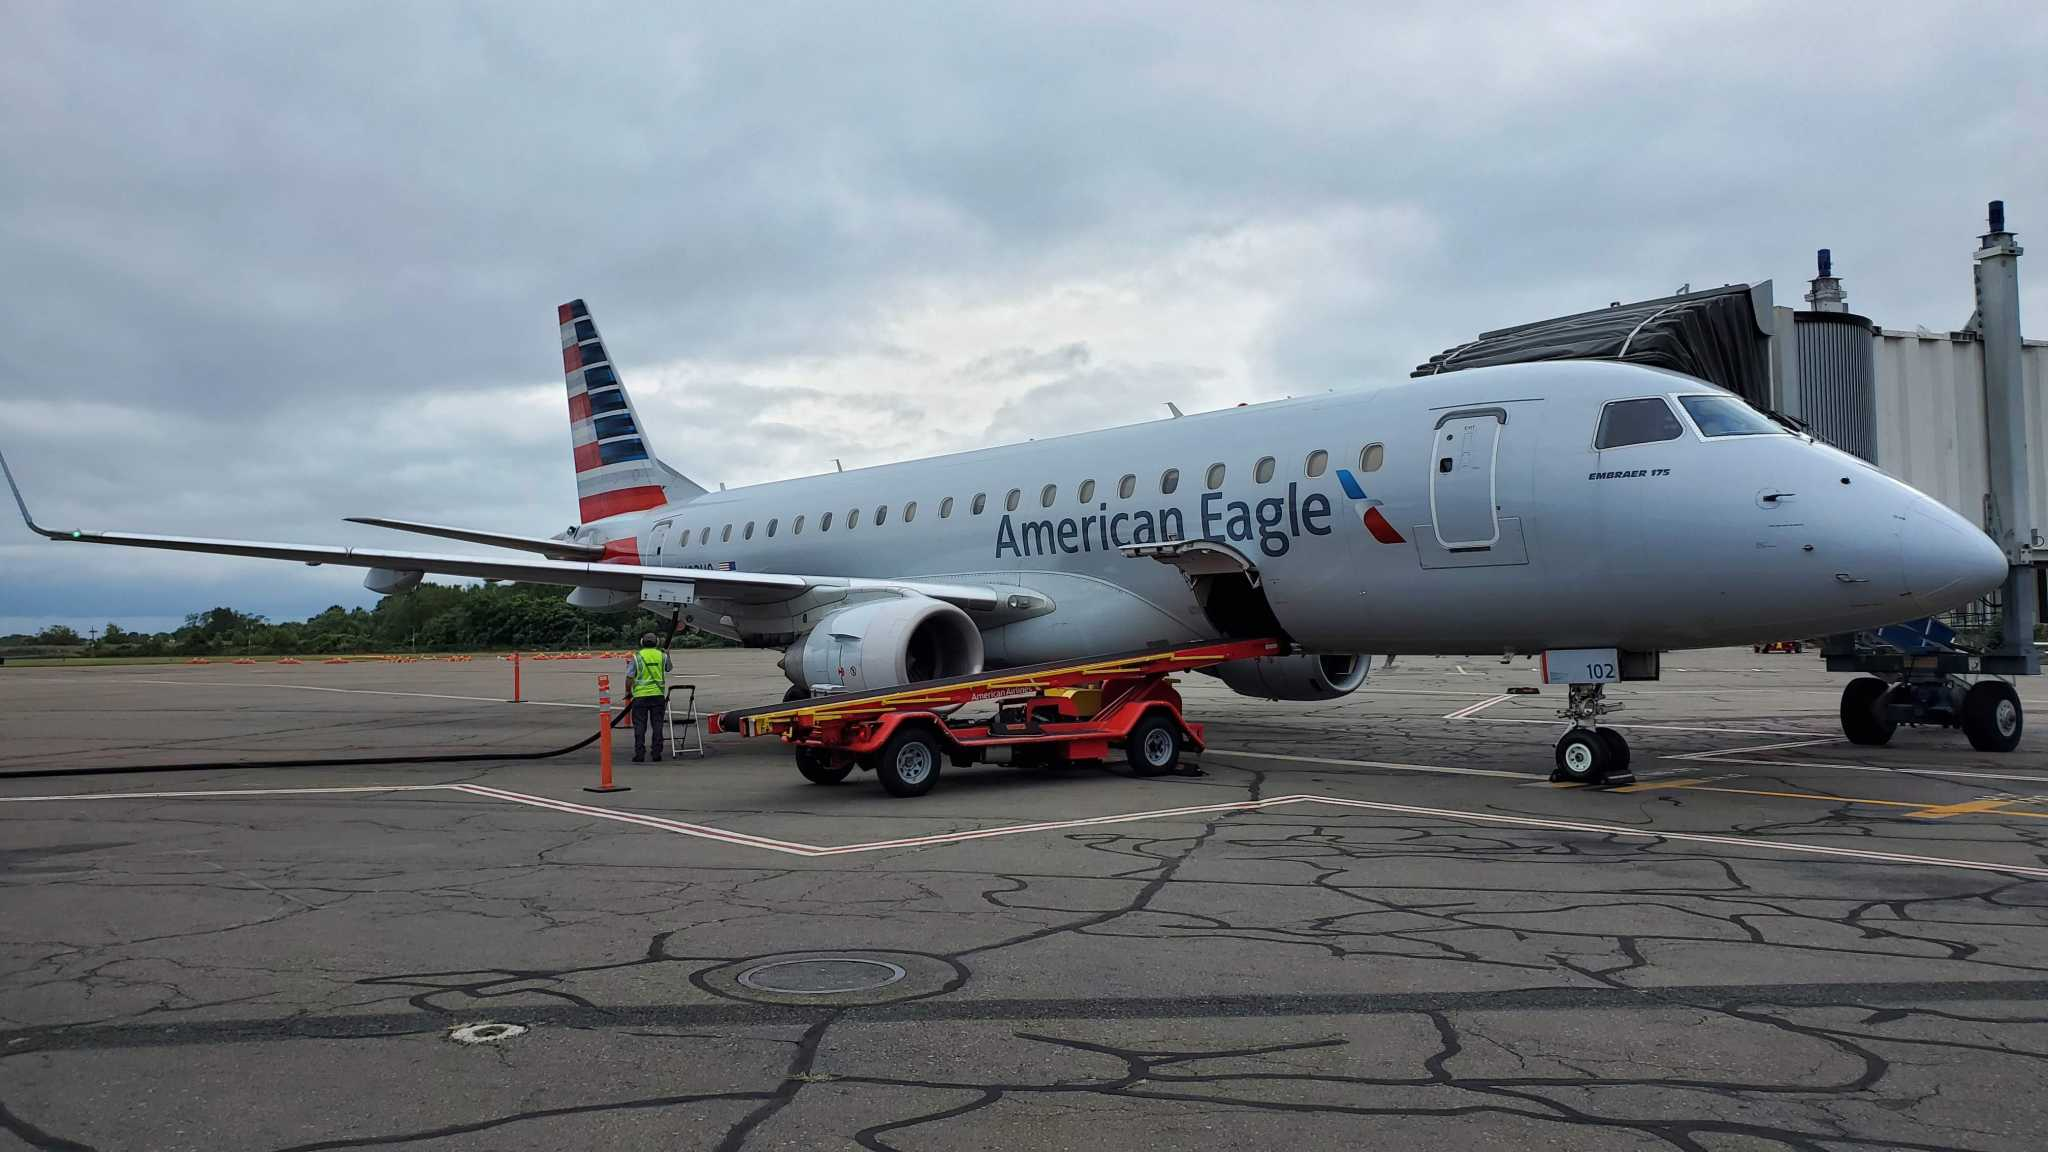 American upgrades aircraft for Tweed flights as airport awaits possible runway ruling appeal